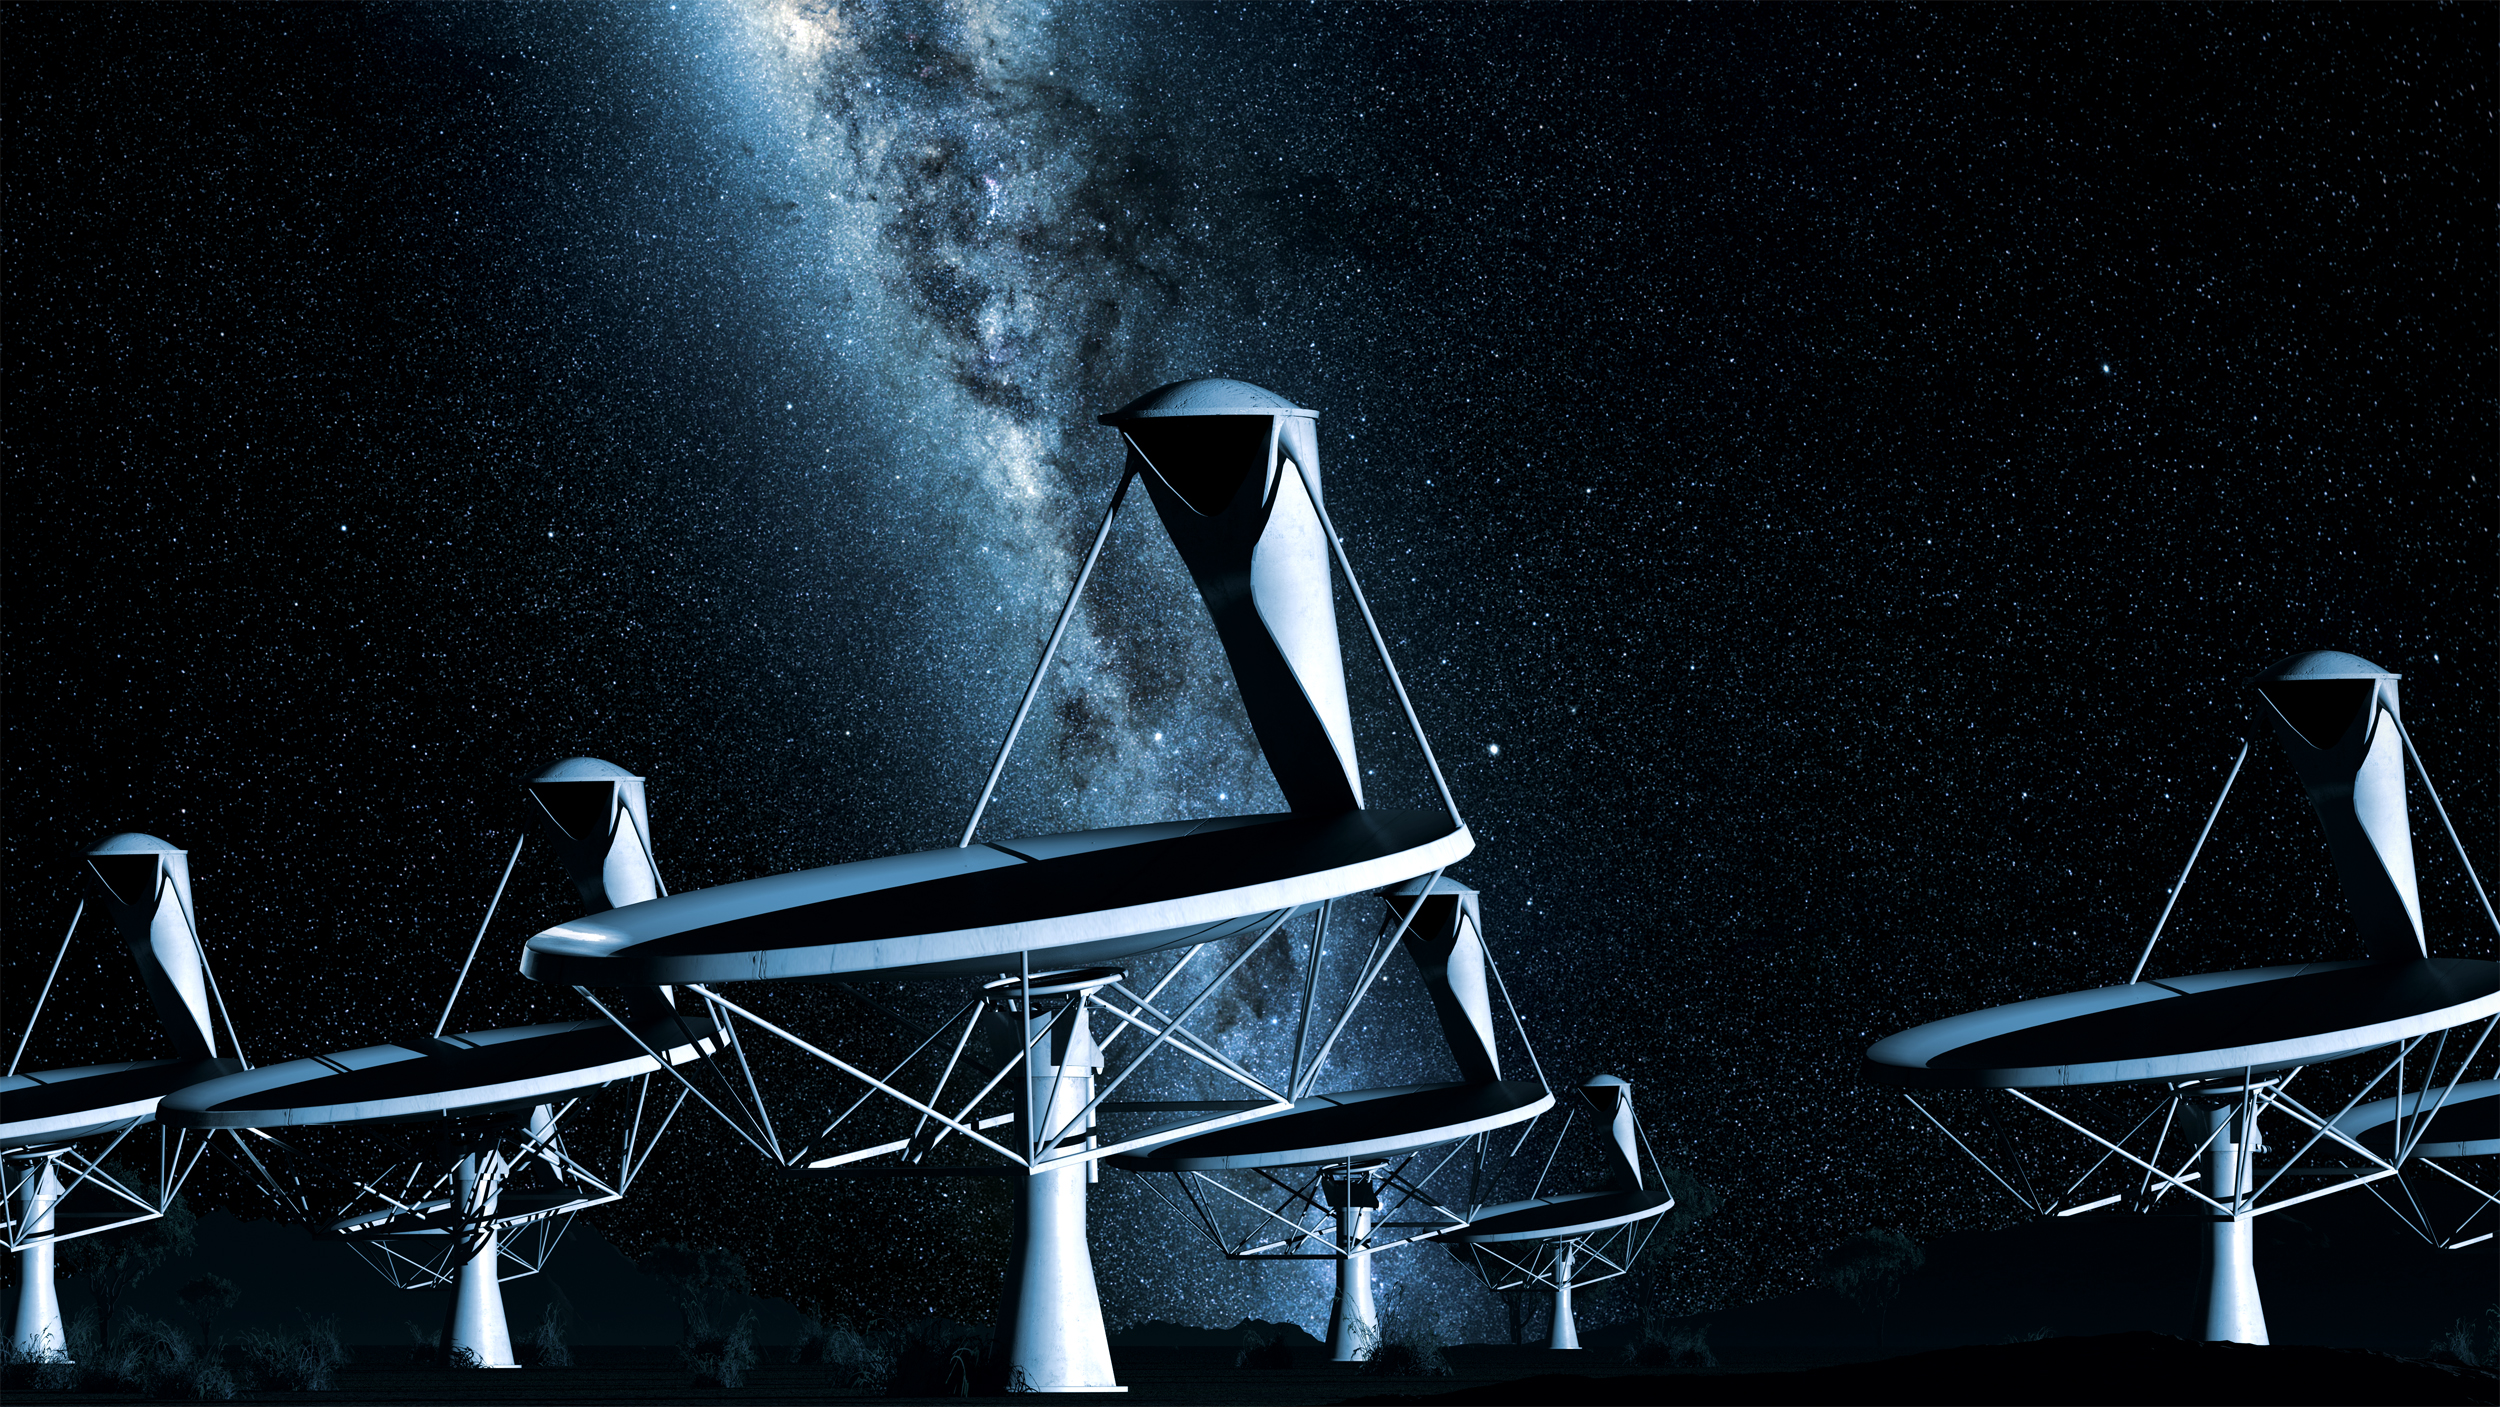 Computer-generated image of four antennas, set against the Milky Way.